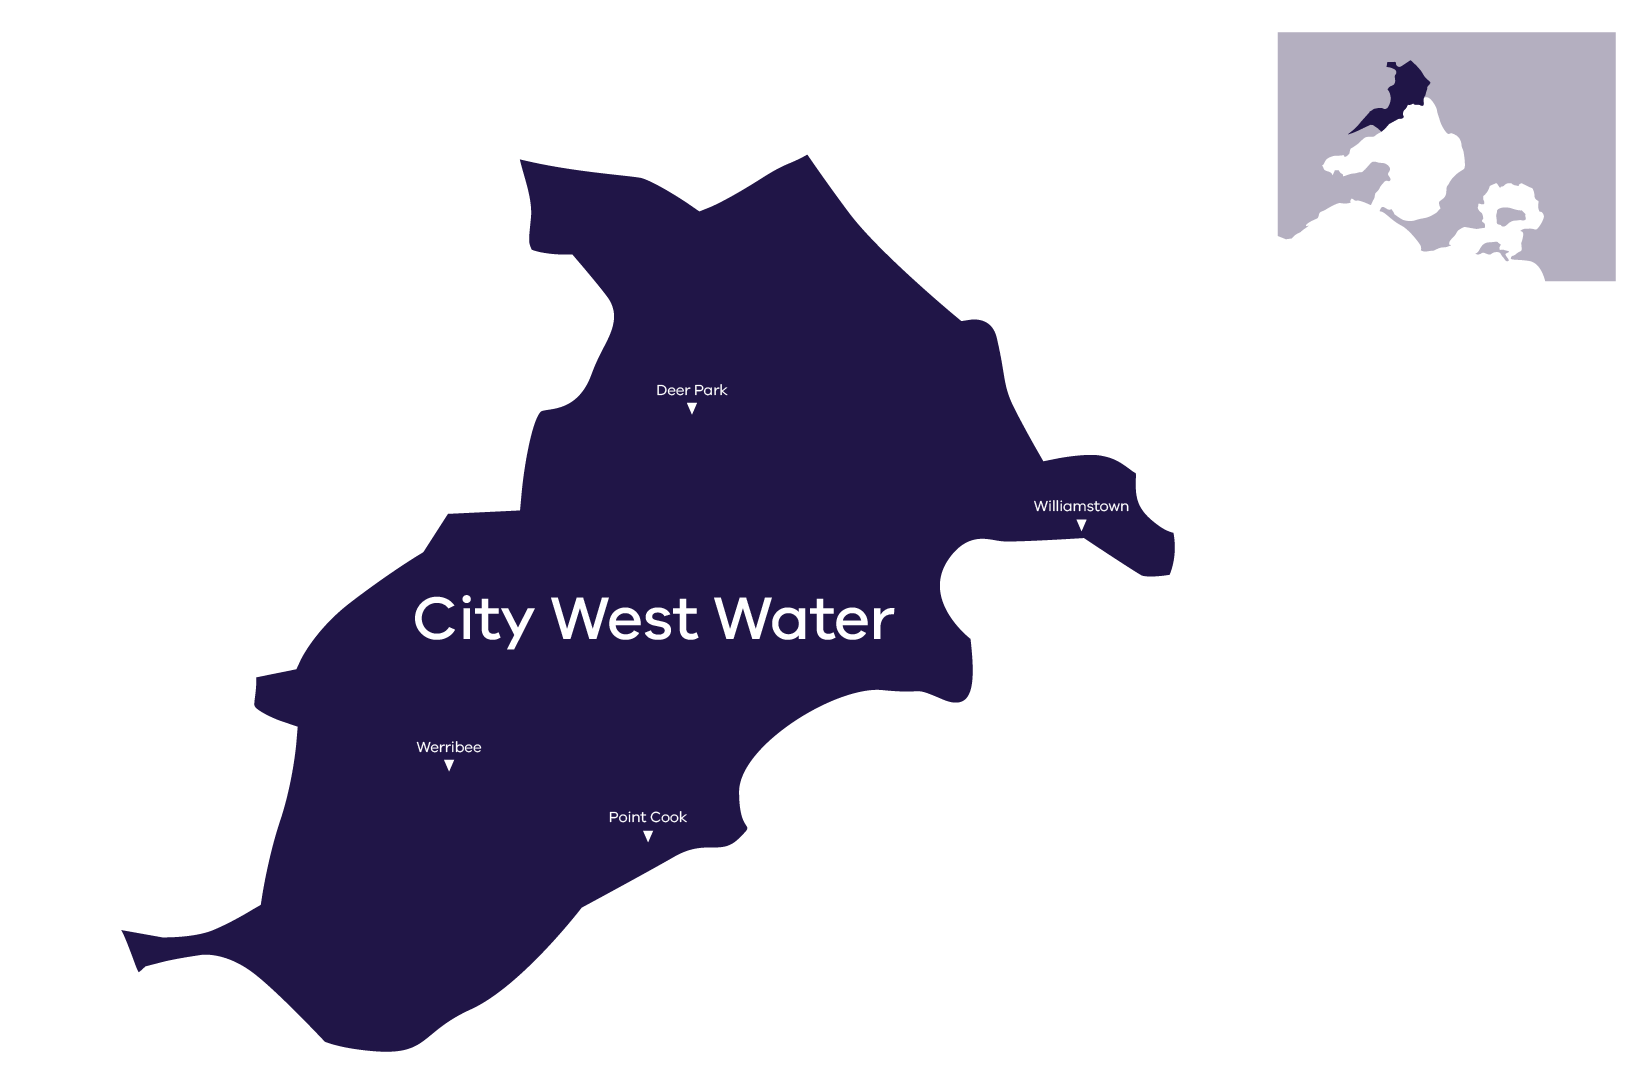 Stylised map of City West Water's service area, for more information call City West Water on 13 16 91